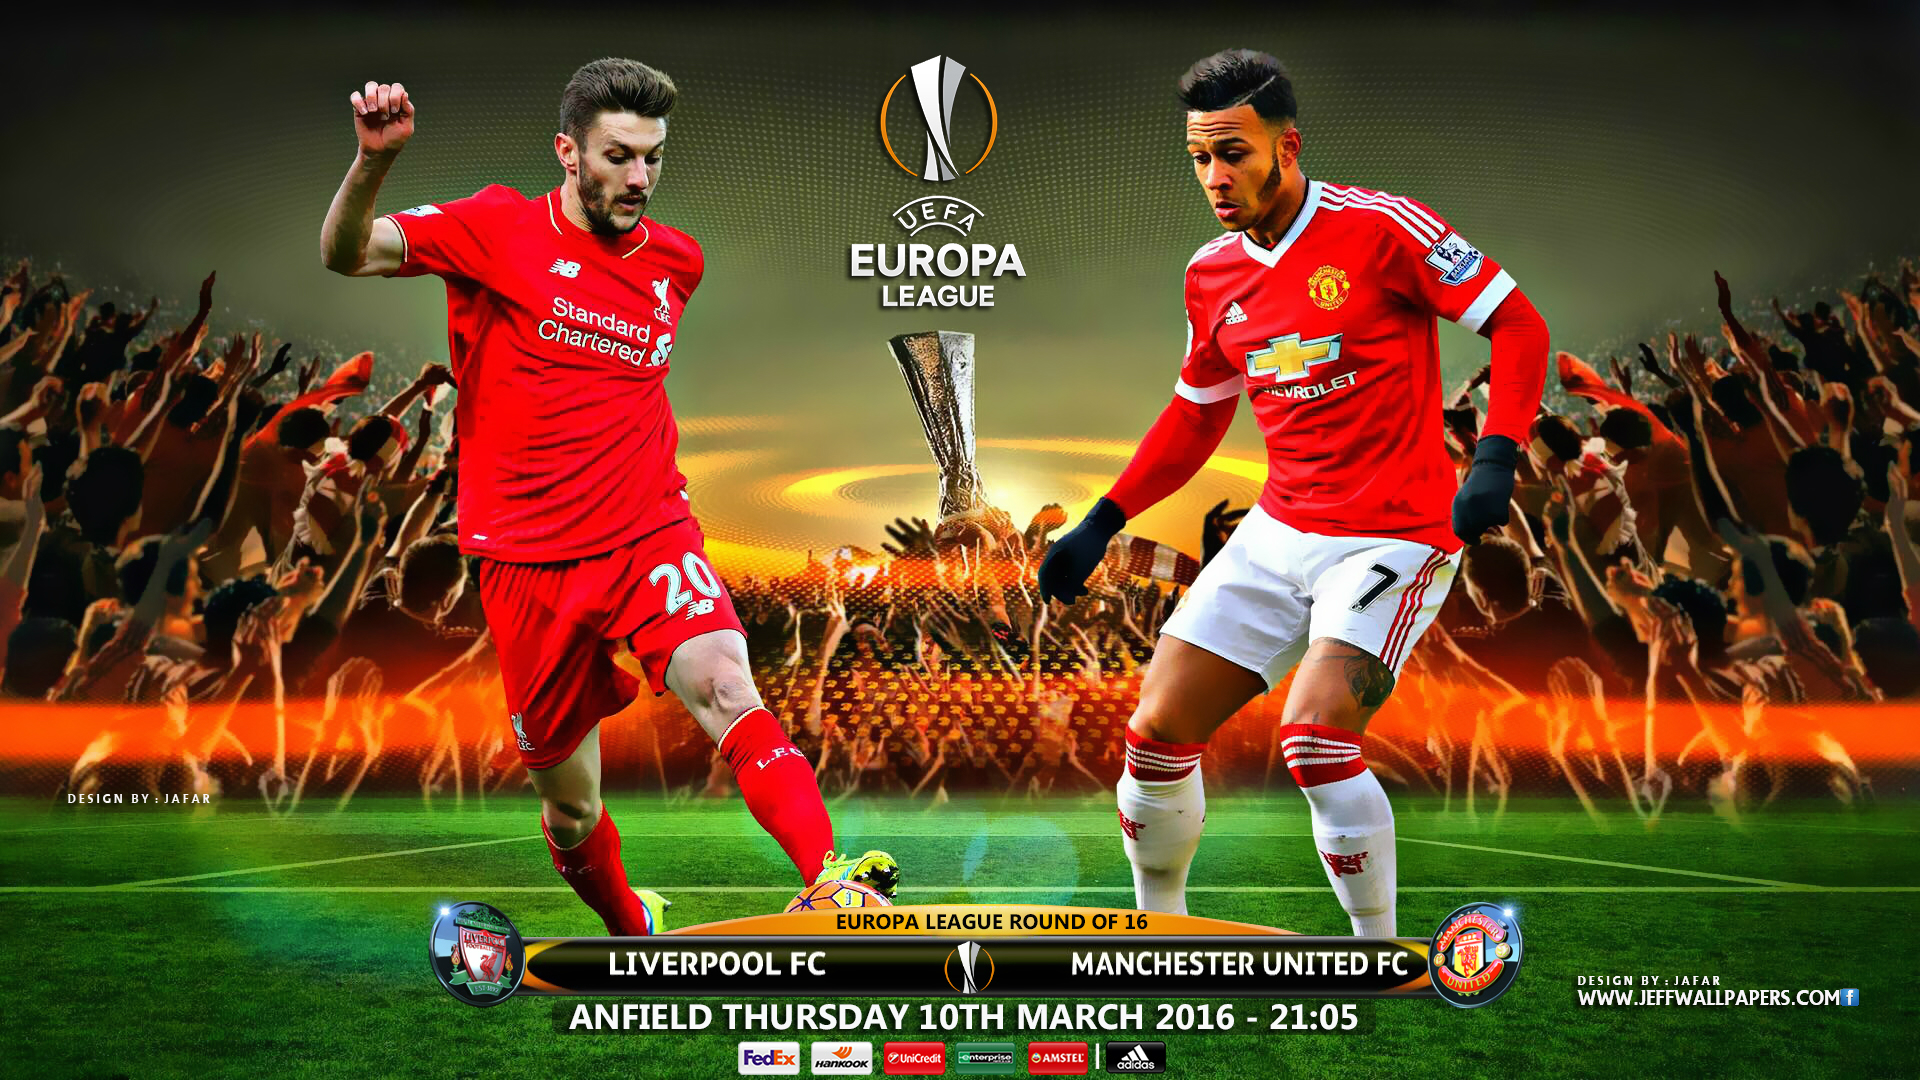 LIVERPOOL MANCHESTER UNITED EUROPA LEAGUE 2016 1920x1080